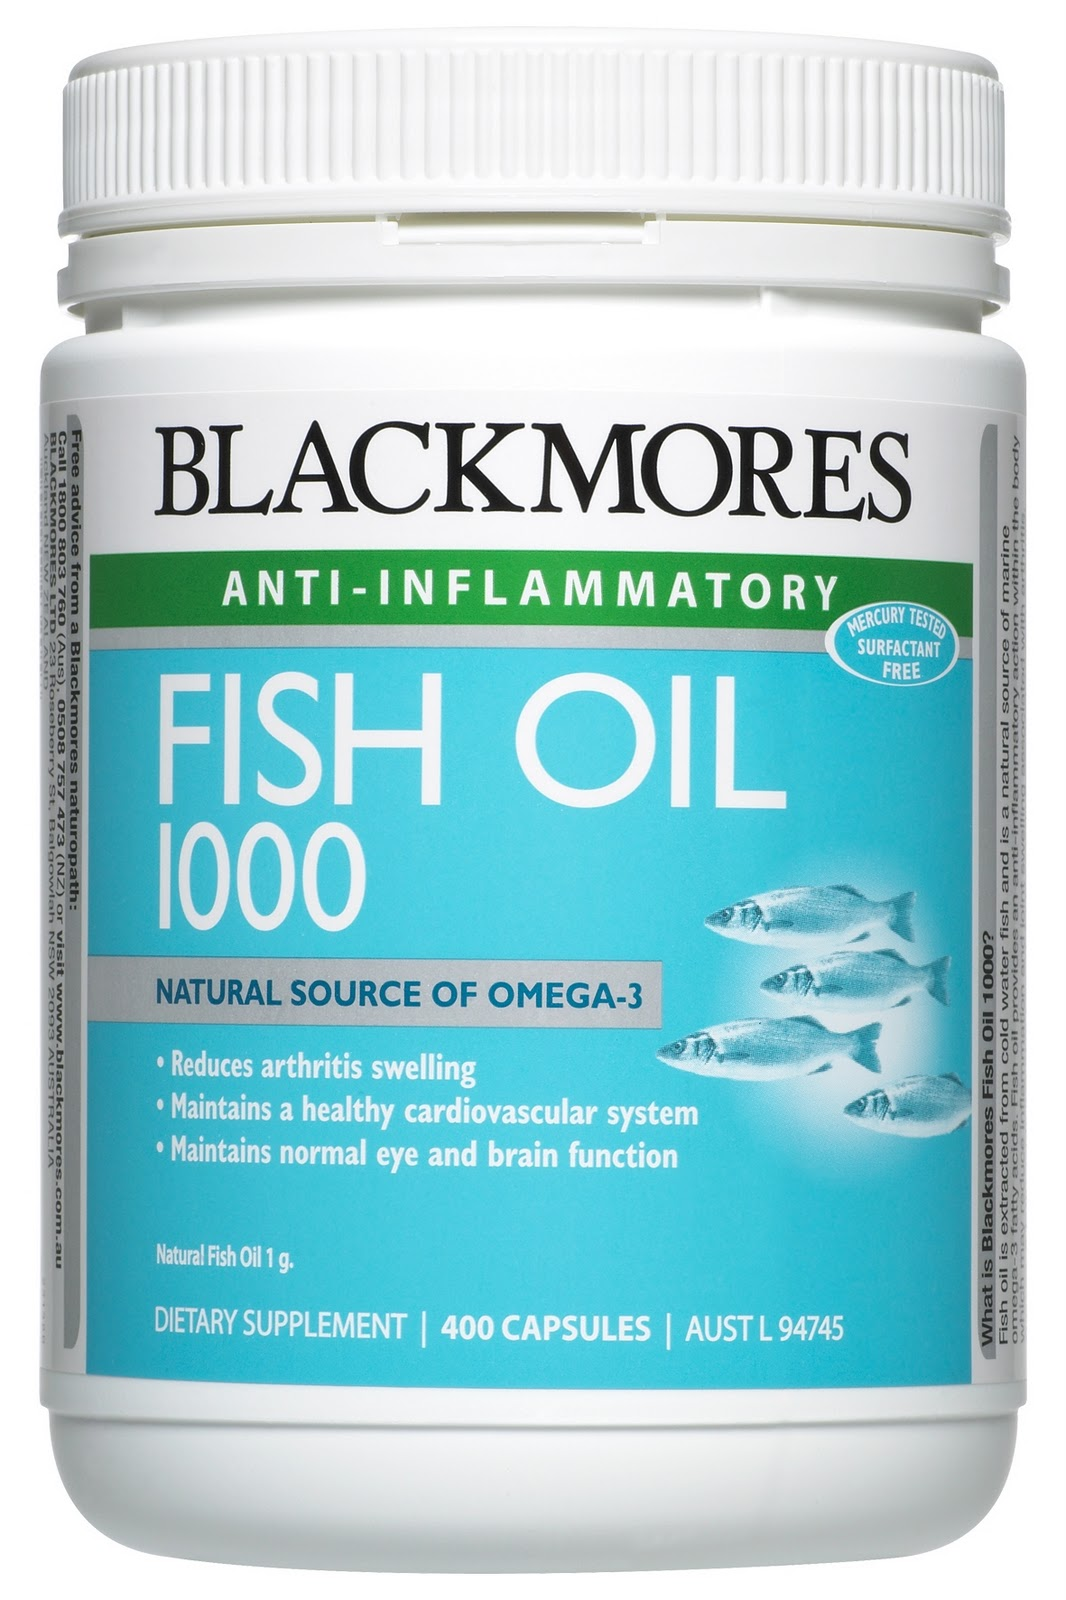 Blackmores fish oil 1000 and evening primrose oil for Is fish oil bad for you